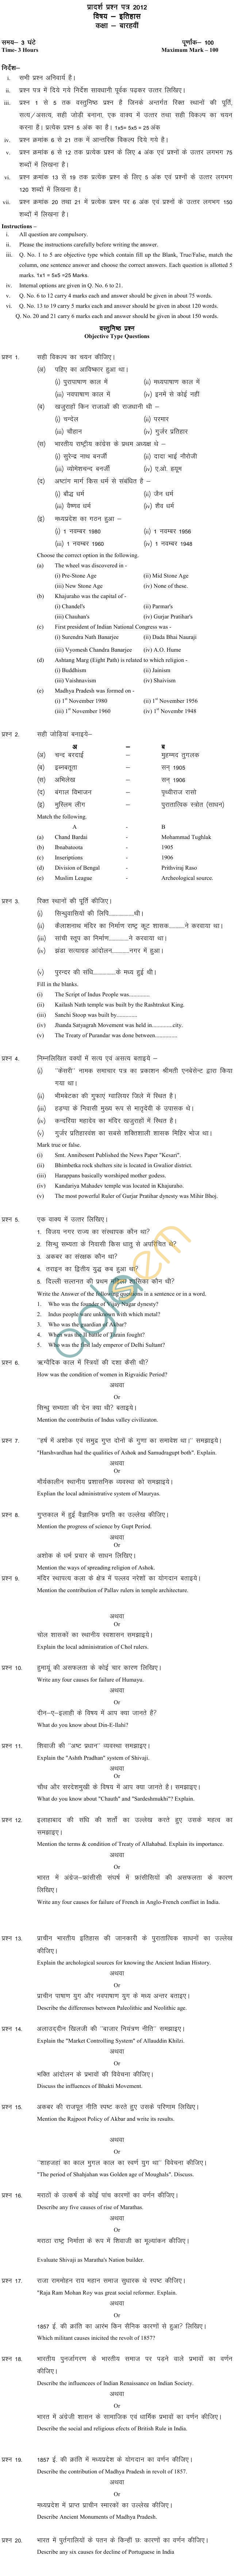 MP Board Class XII History Model Questions & Answers - Set 3